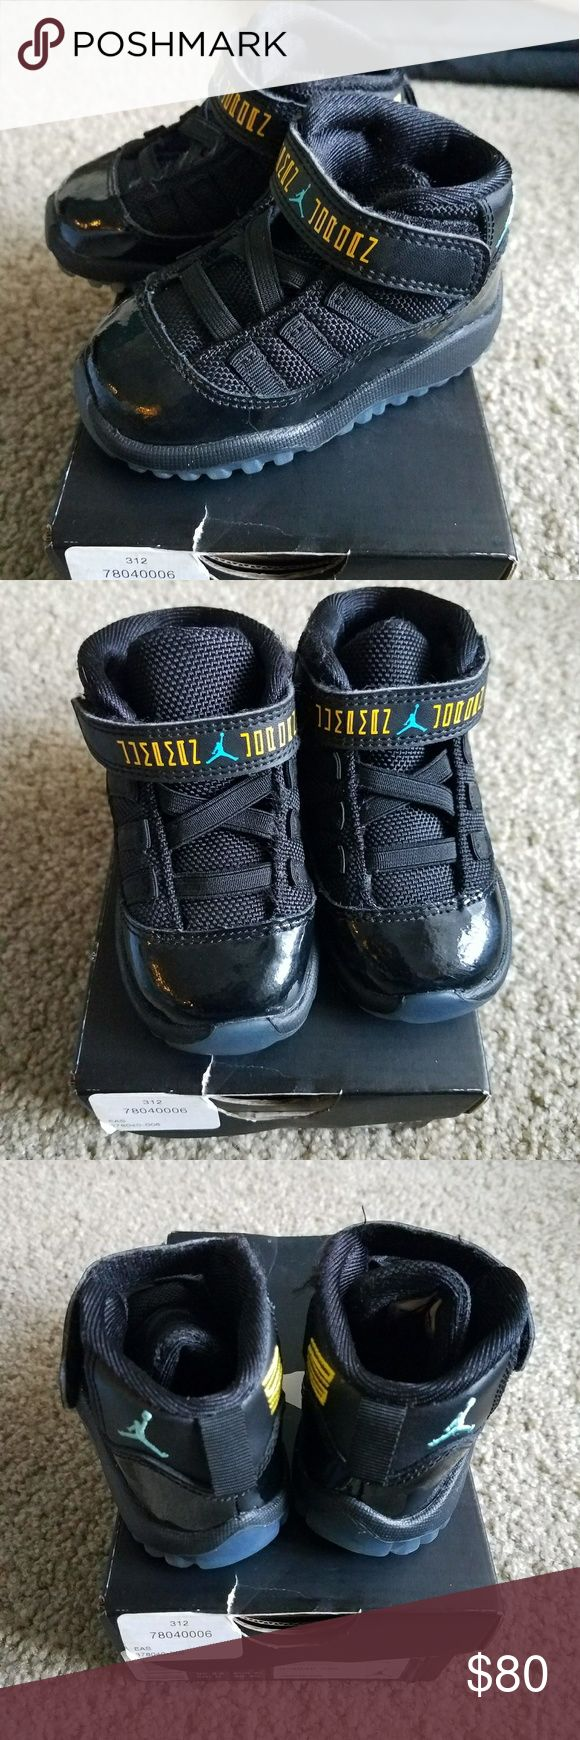 Jordan Gamma 11 sz 5c Infant Excellent condition worn lightly,  practically new,  resellers want 125-150$ easy for these rare jordan Jordan Shoes Sneakers